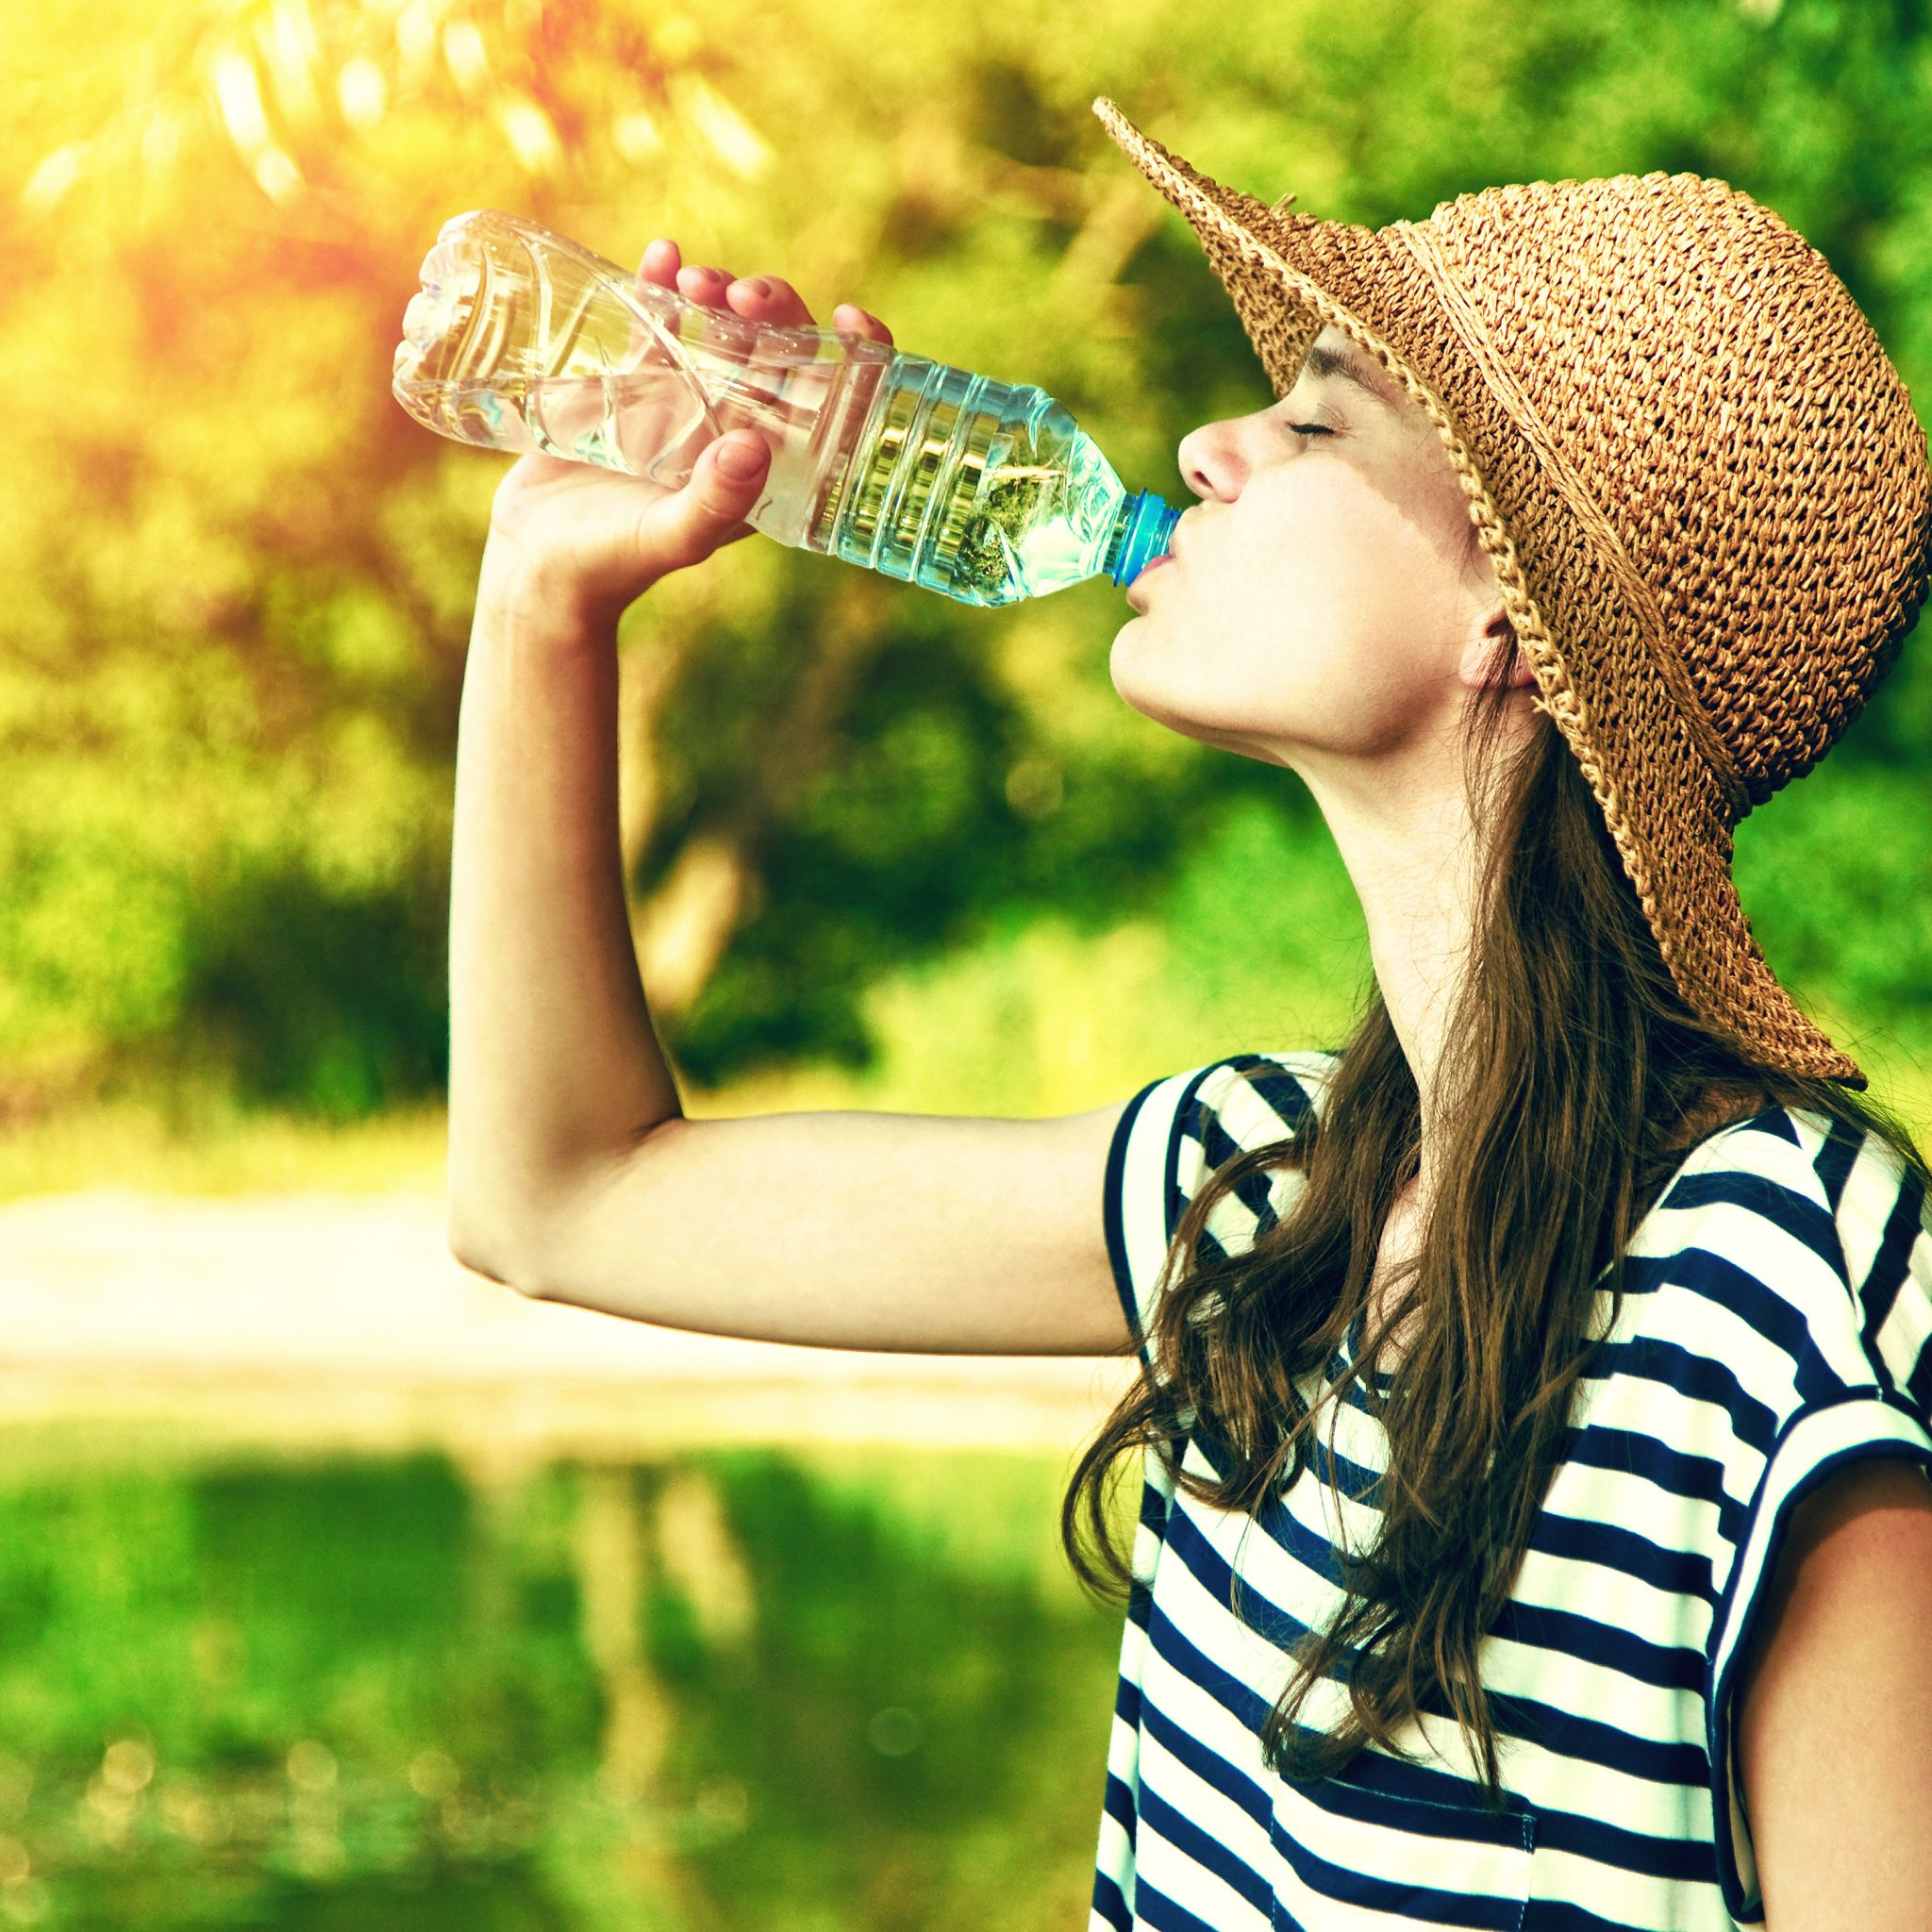 Woman drinking water in the summer heat.